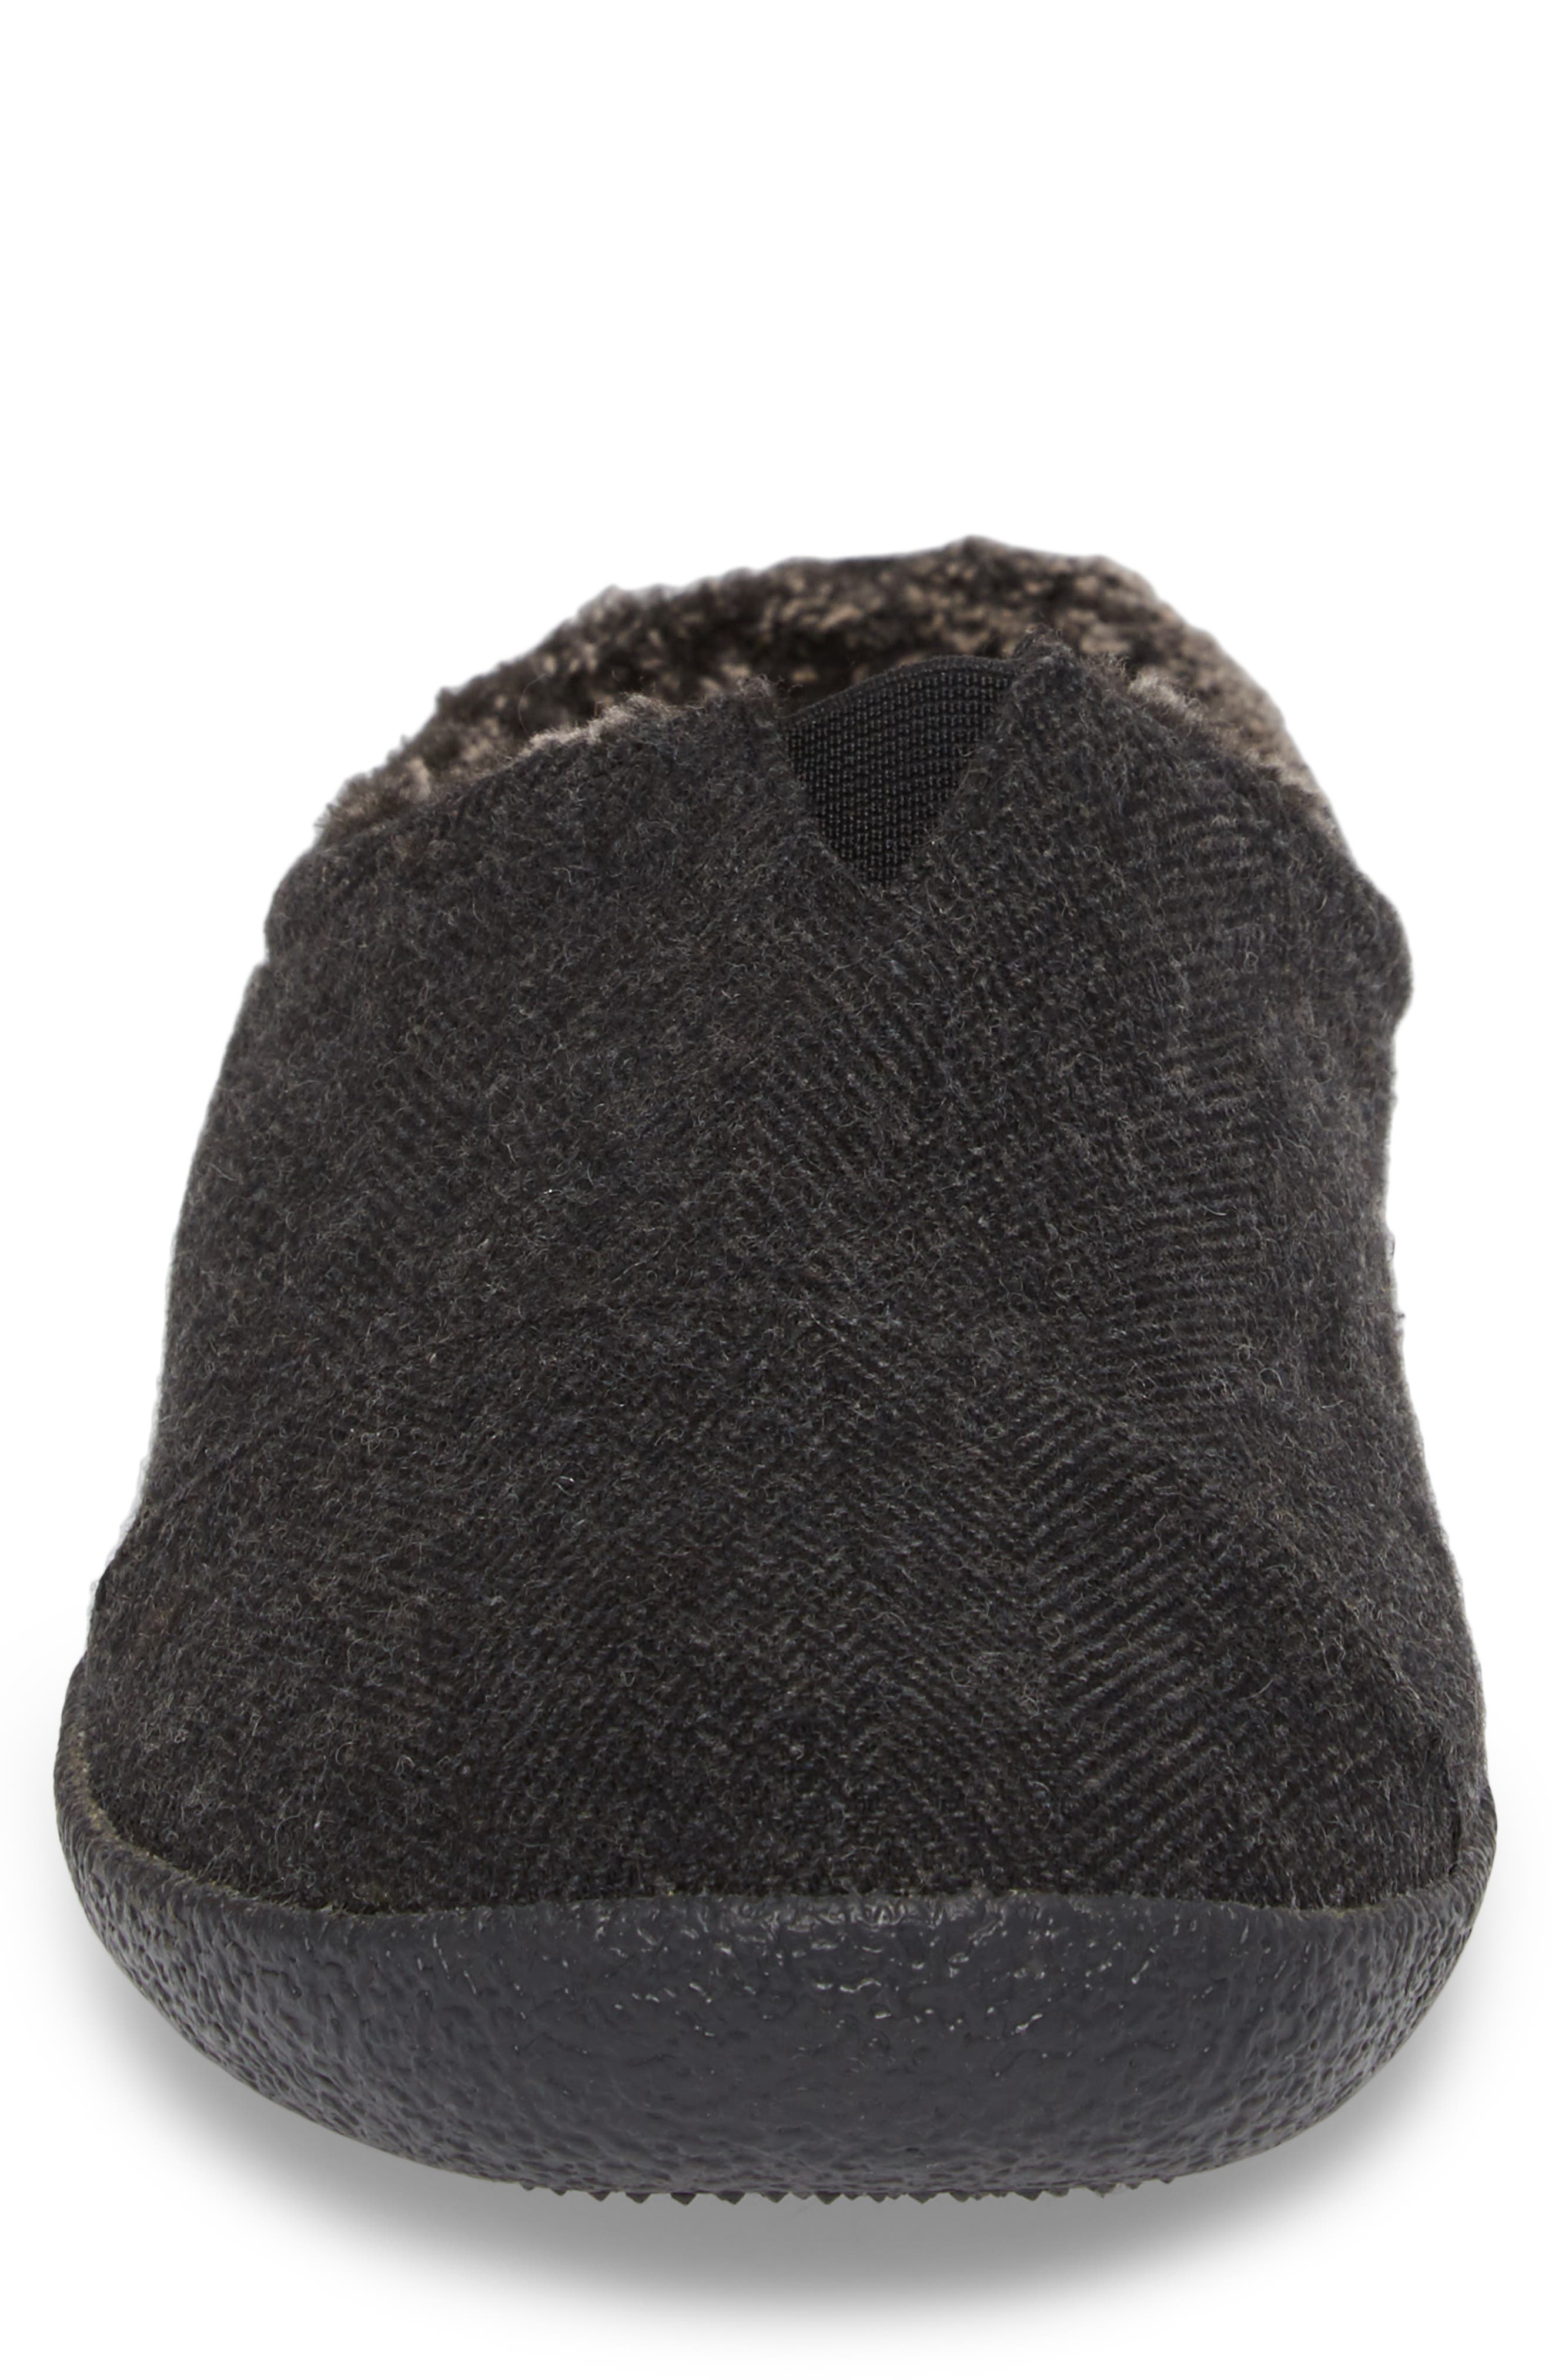 Berkeley Slipper with Faux Fur Lining,                             Alternate thumbnail 4, color,                             Black